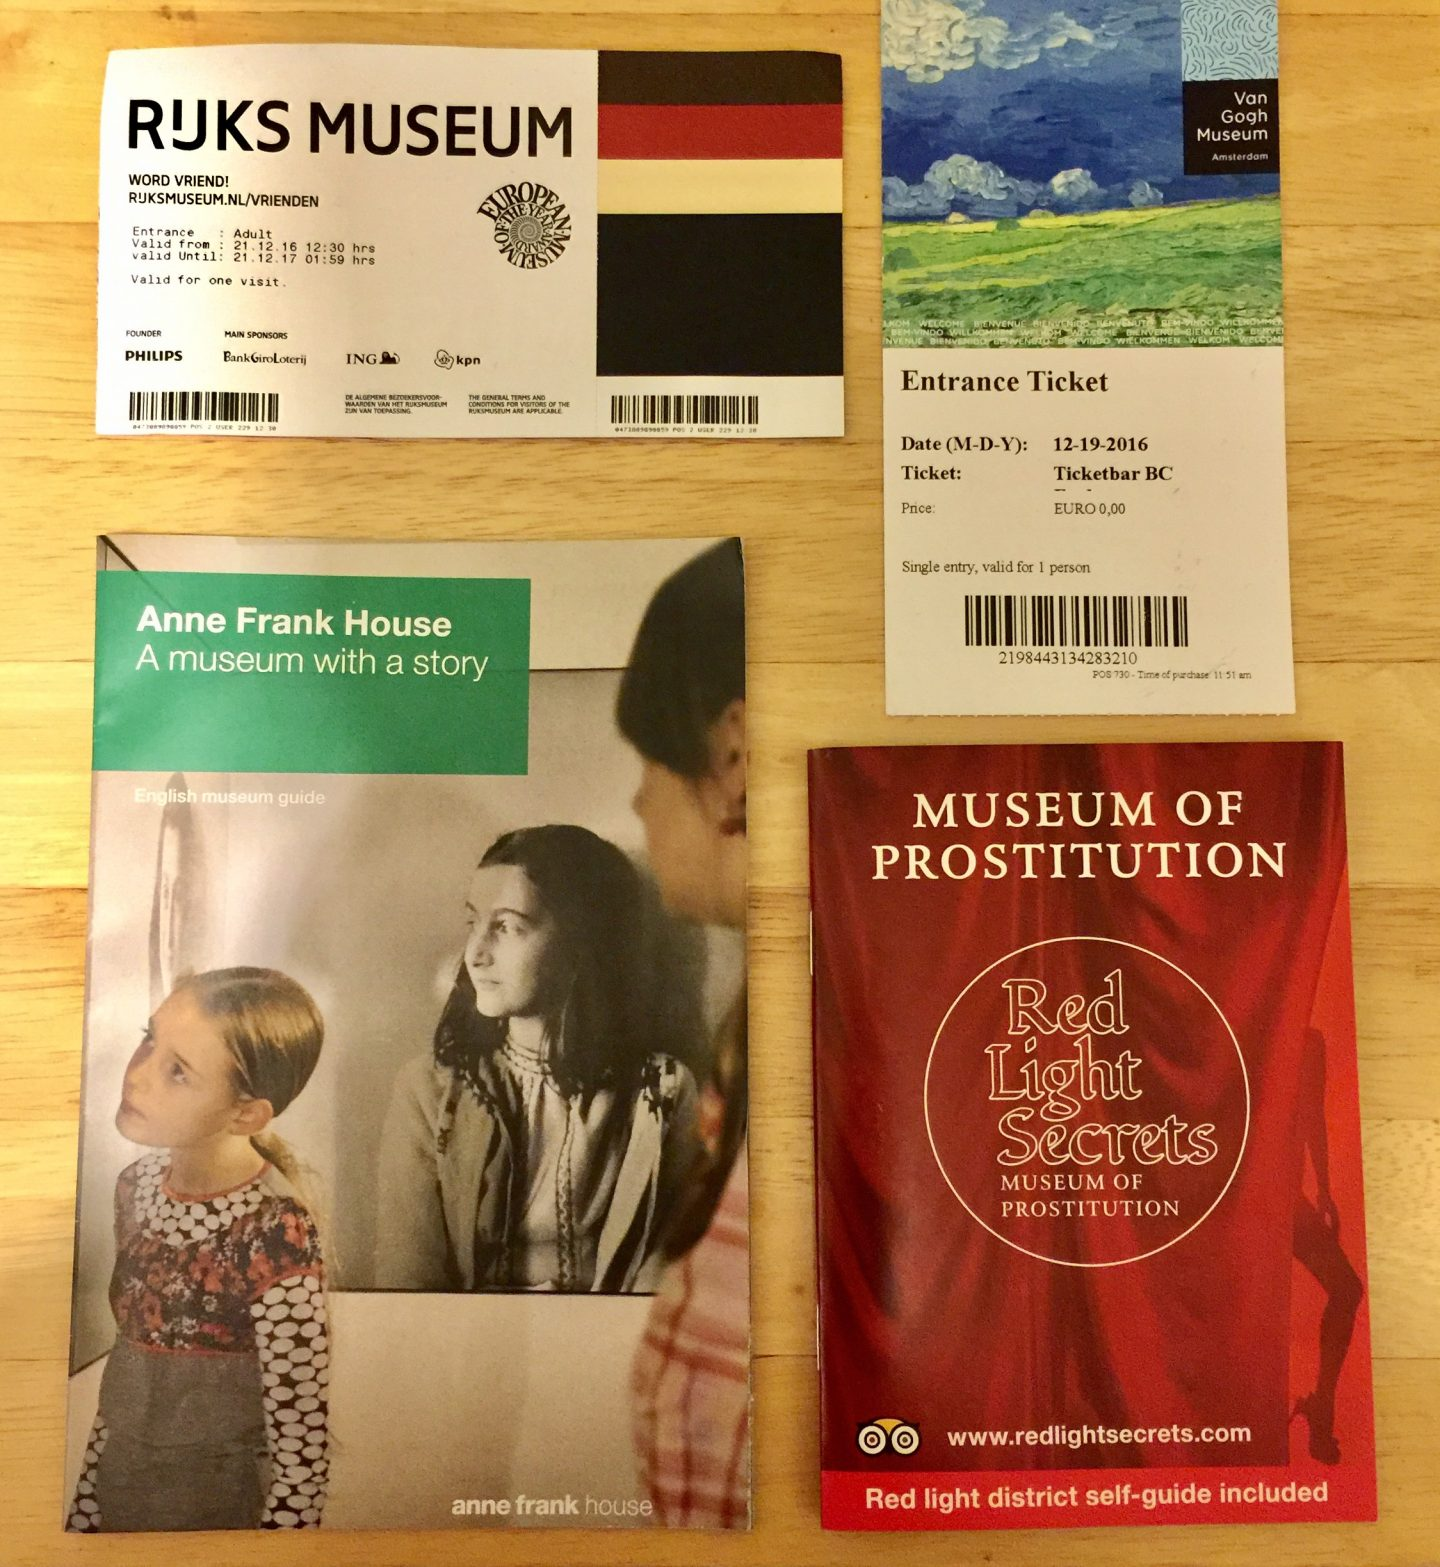 how-to-spend-a-long-weekend-in-amsterdam-museum-tickets